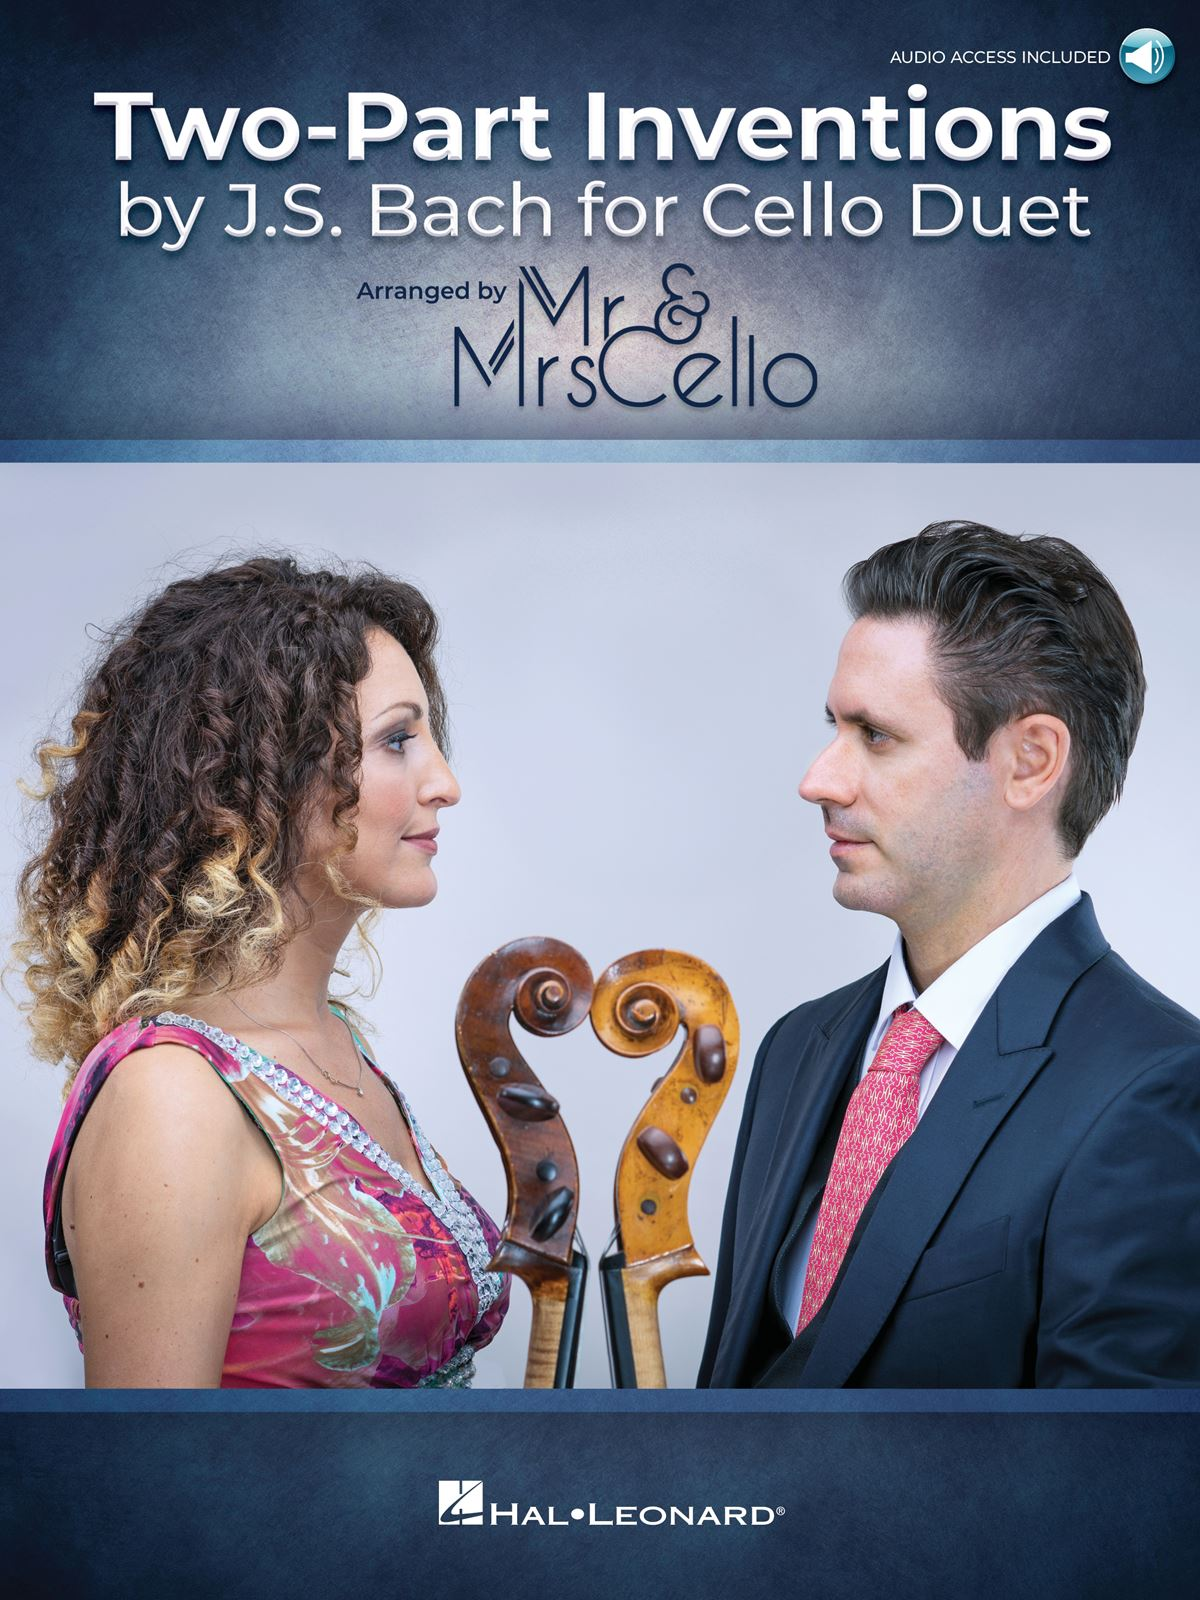 Mr. And Mrs. Cello: Two Part Inventions by J.S. Bach for Cello Duet: Cello Duet: